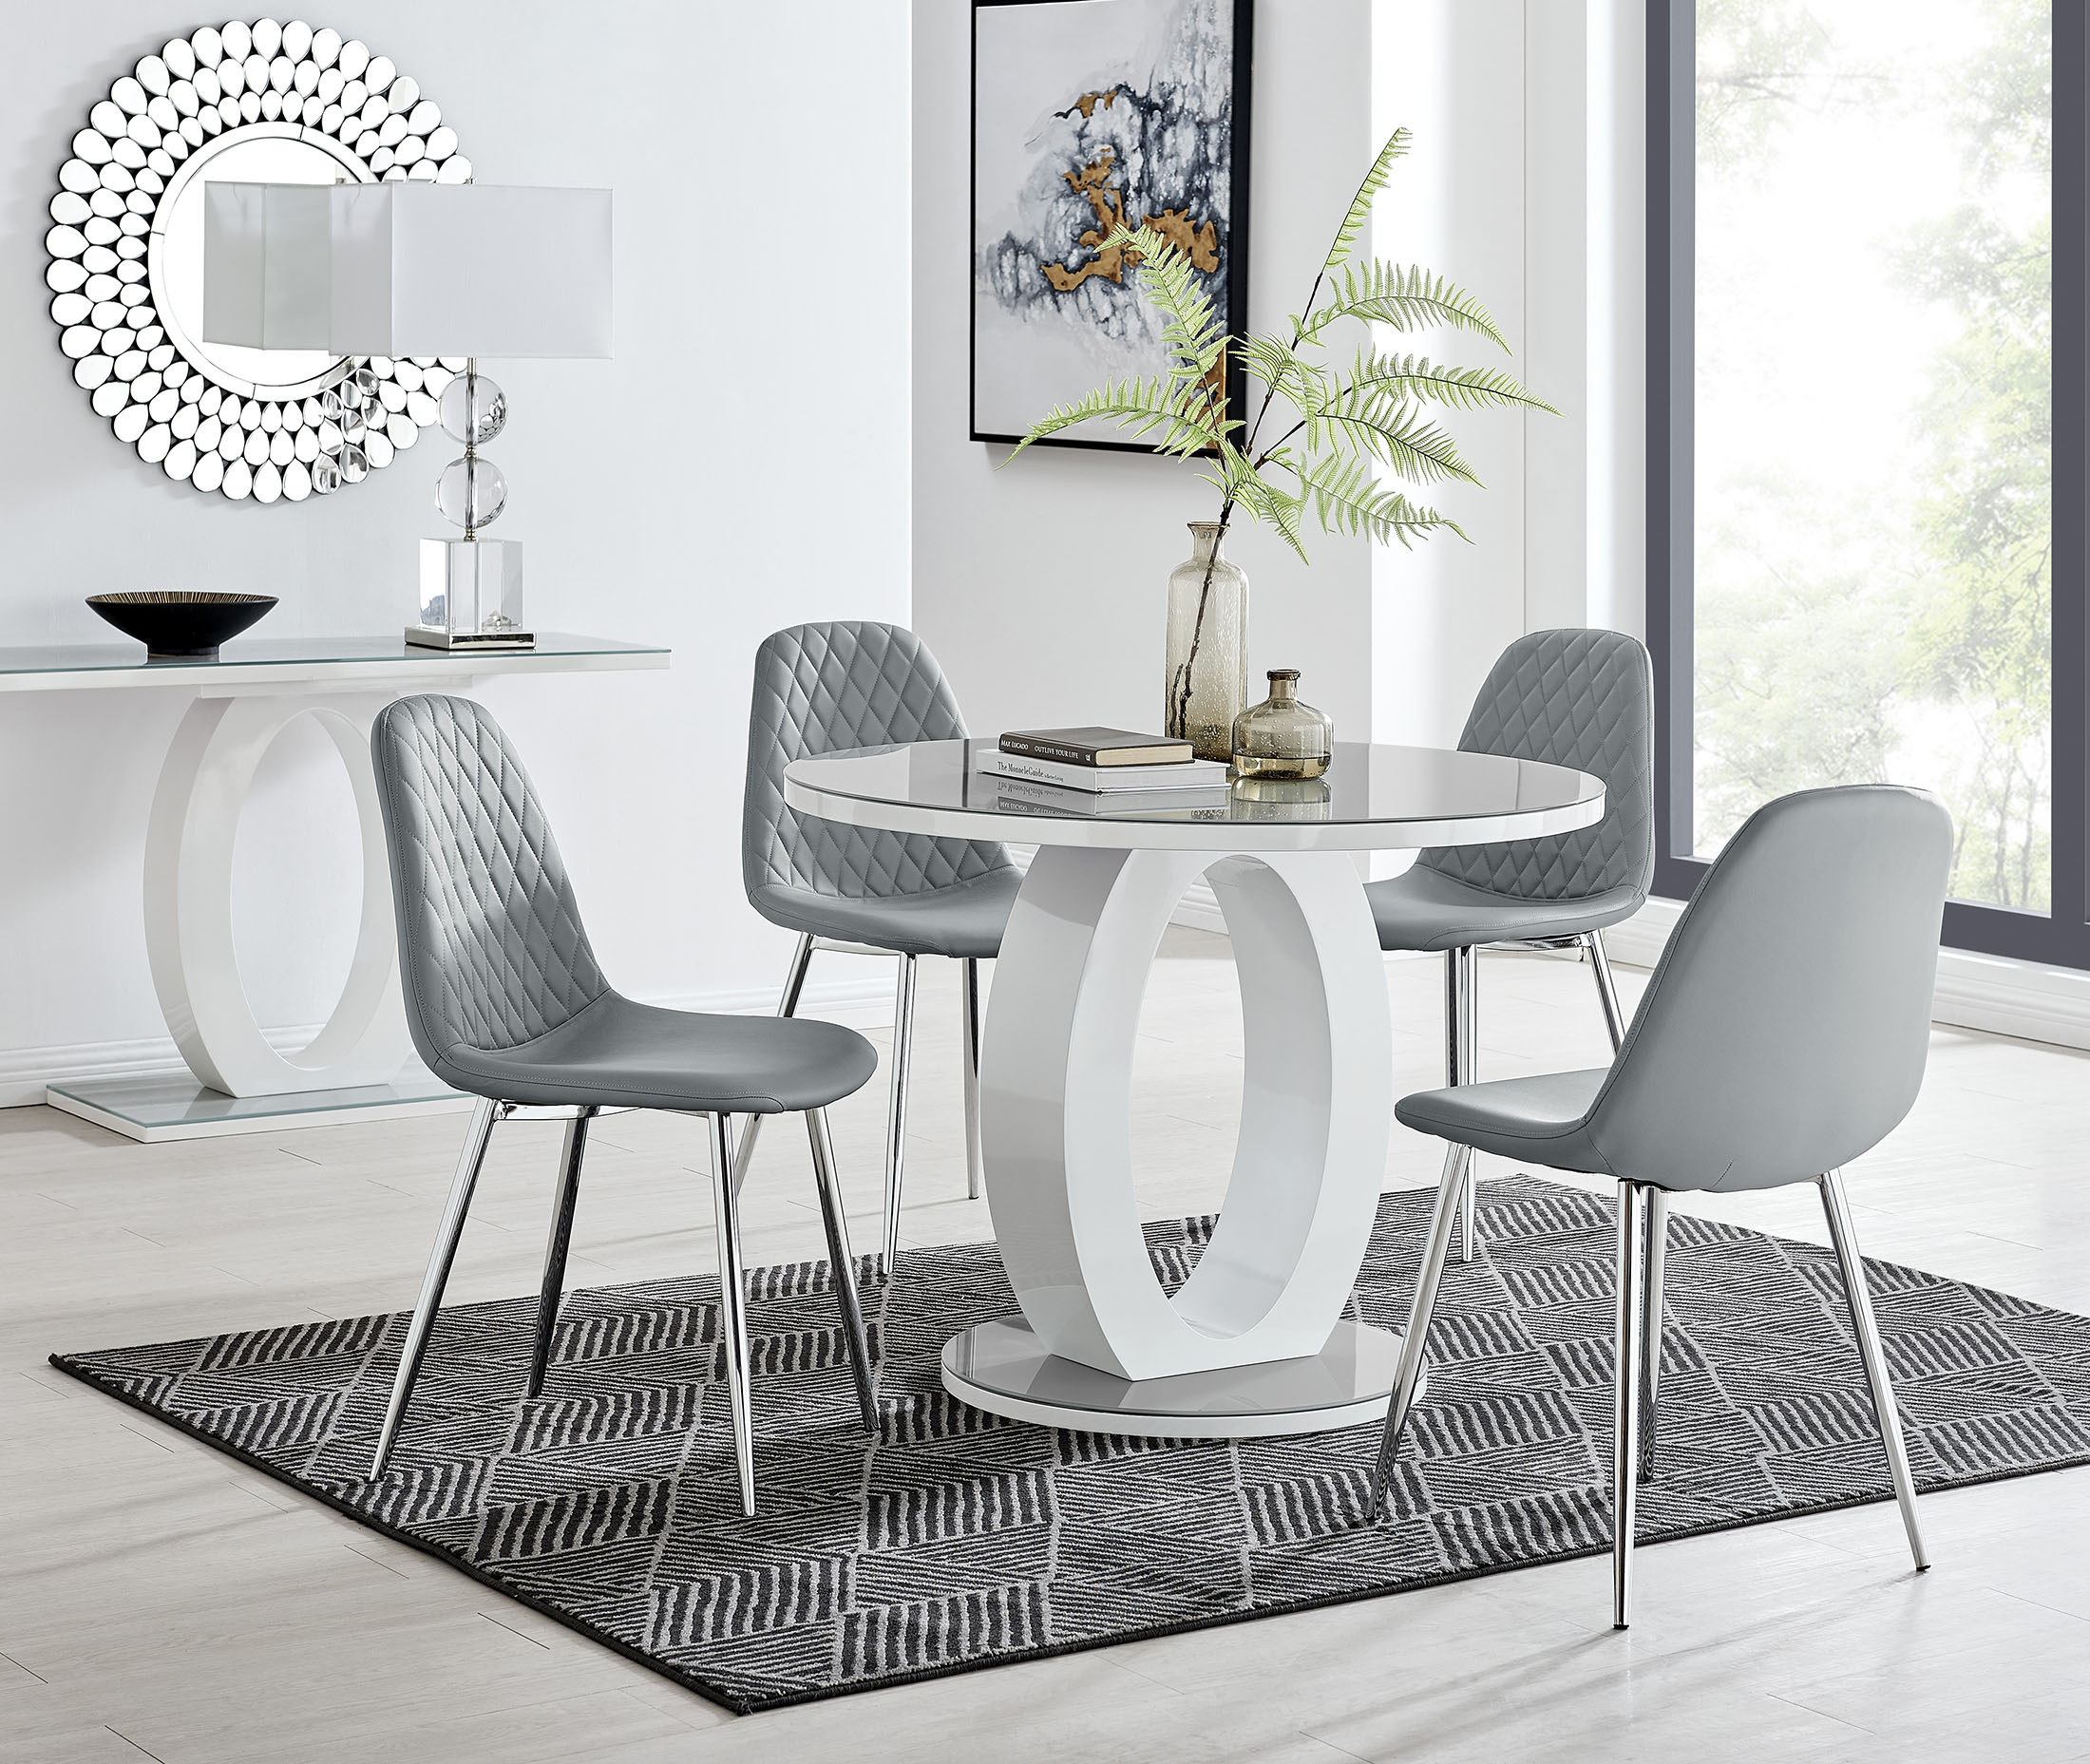 Grey White Round Gloss Dining Table, Round Kitchen Tables And Chairs Uk